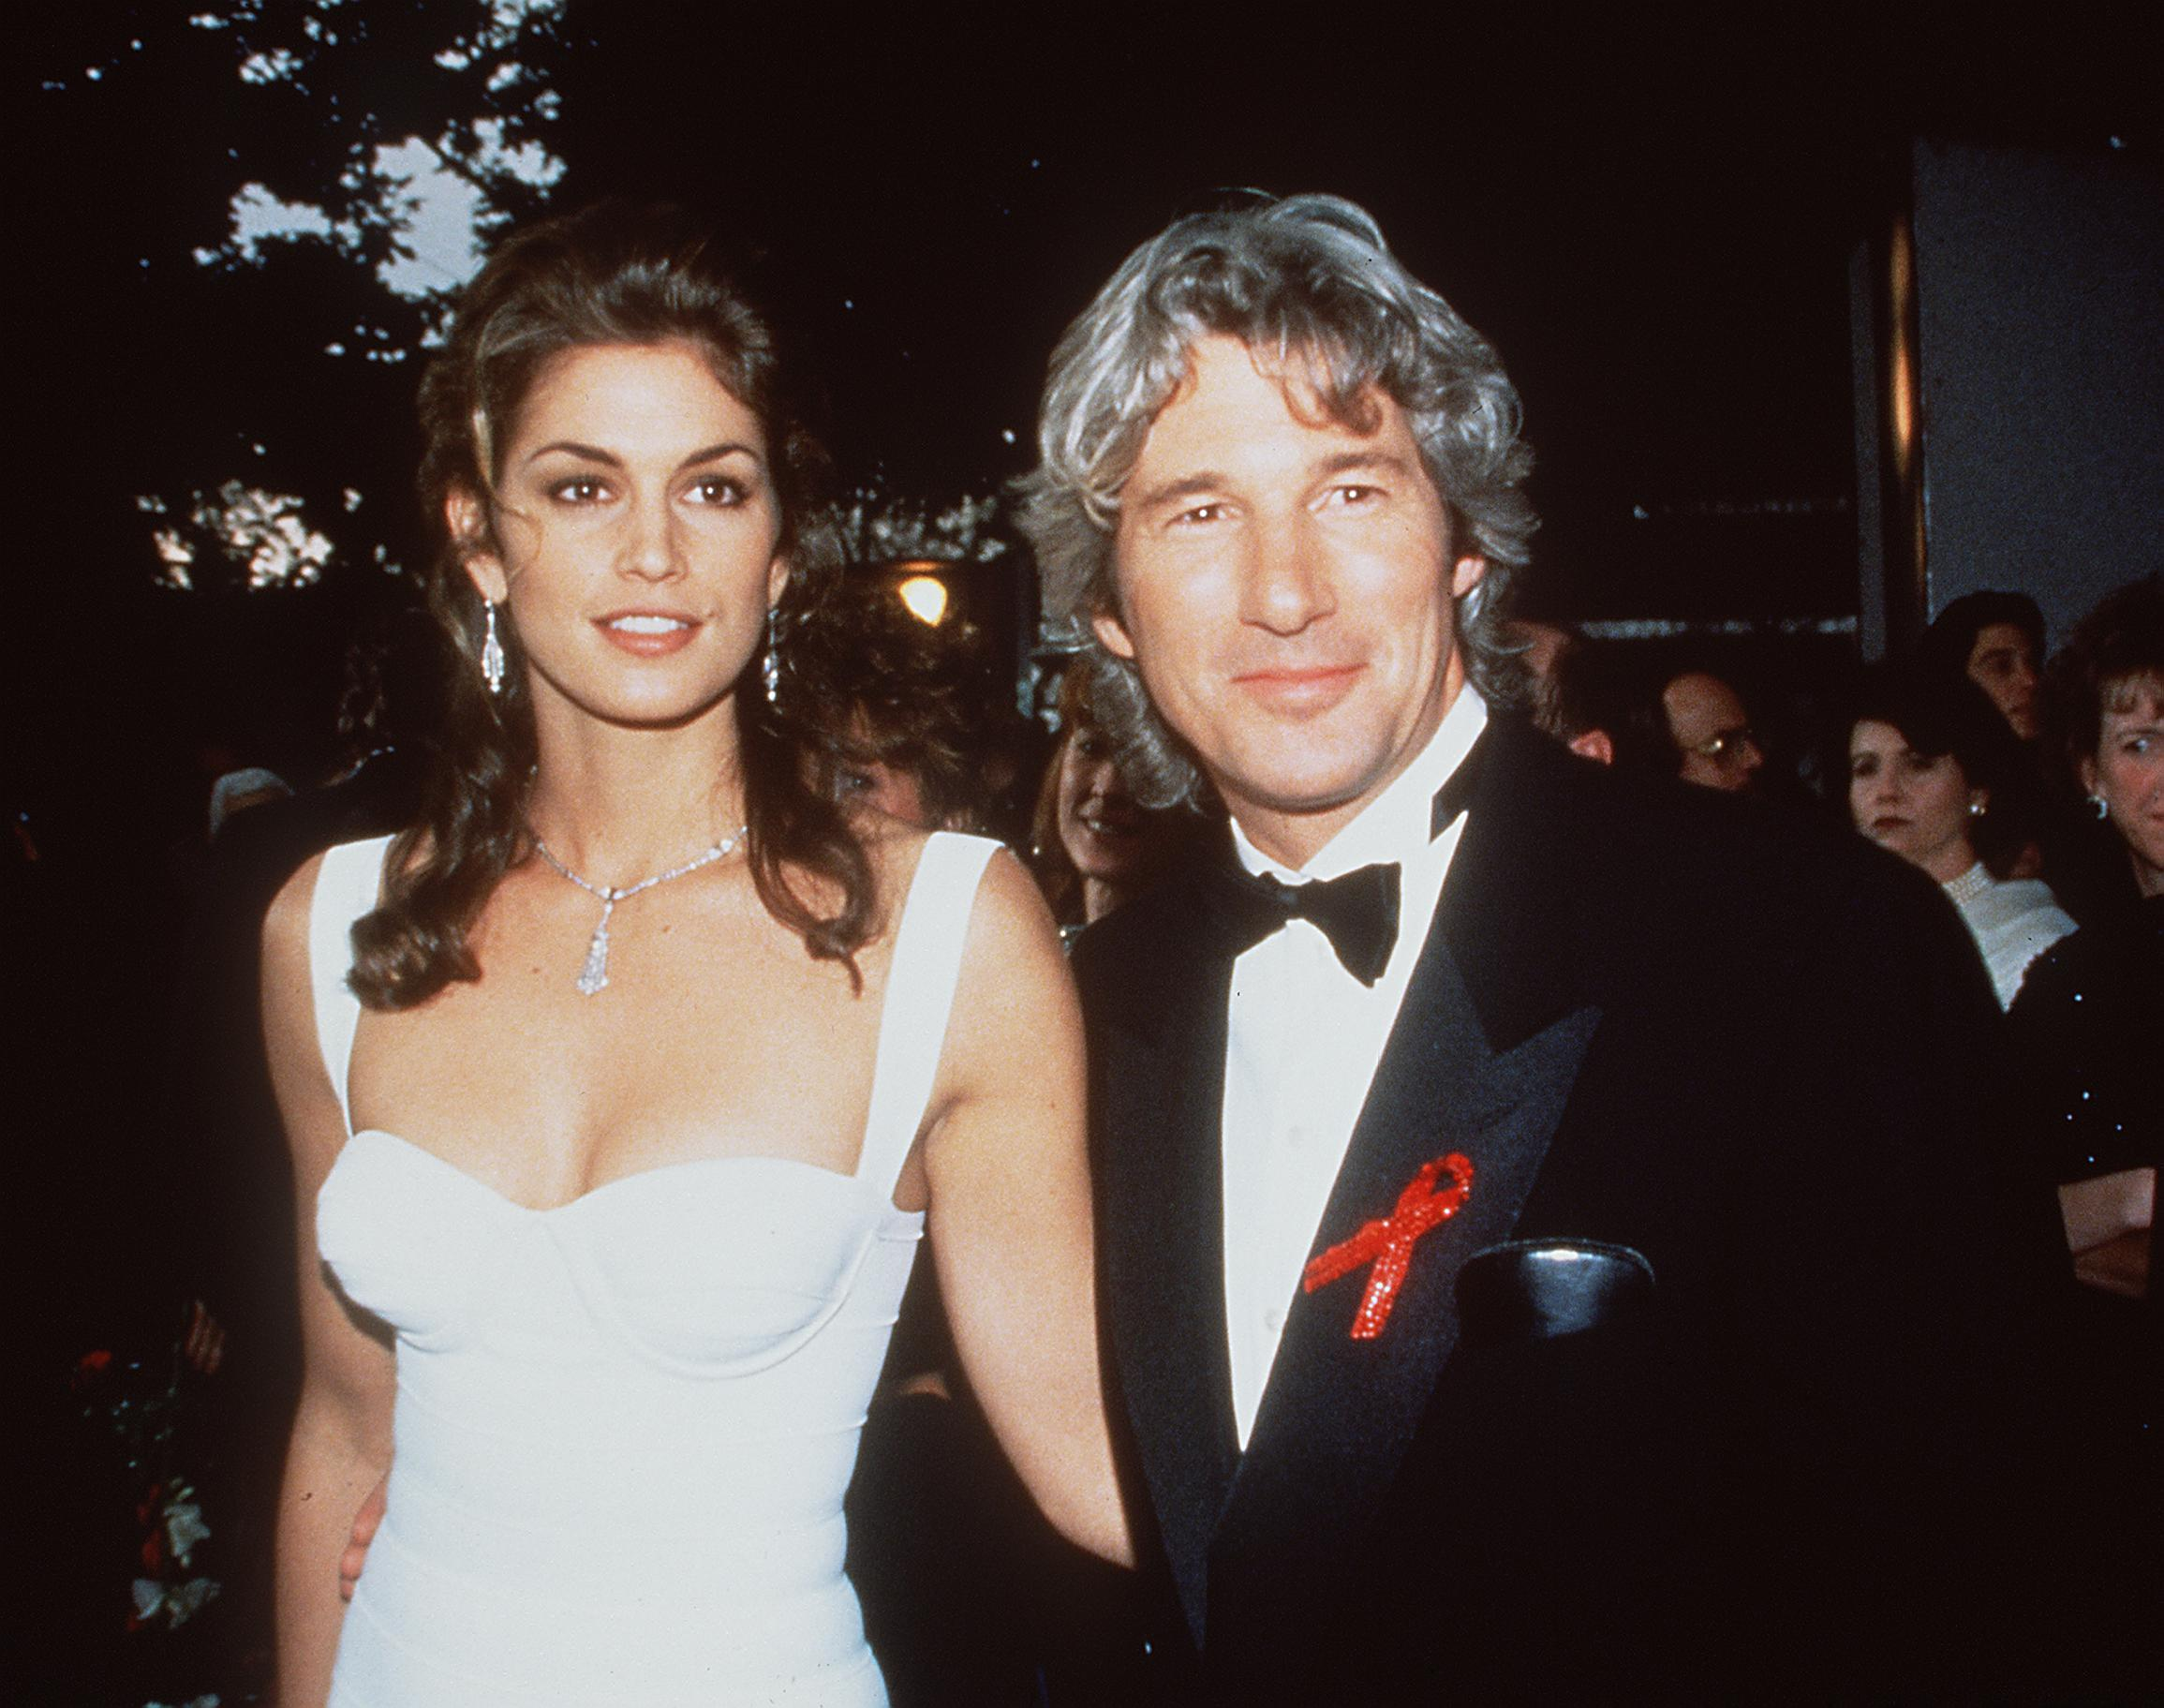 Richard Gere and Cindy Crawford in 1993. | Photo: Getty Images.